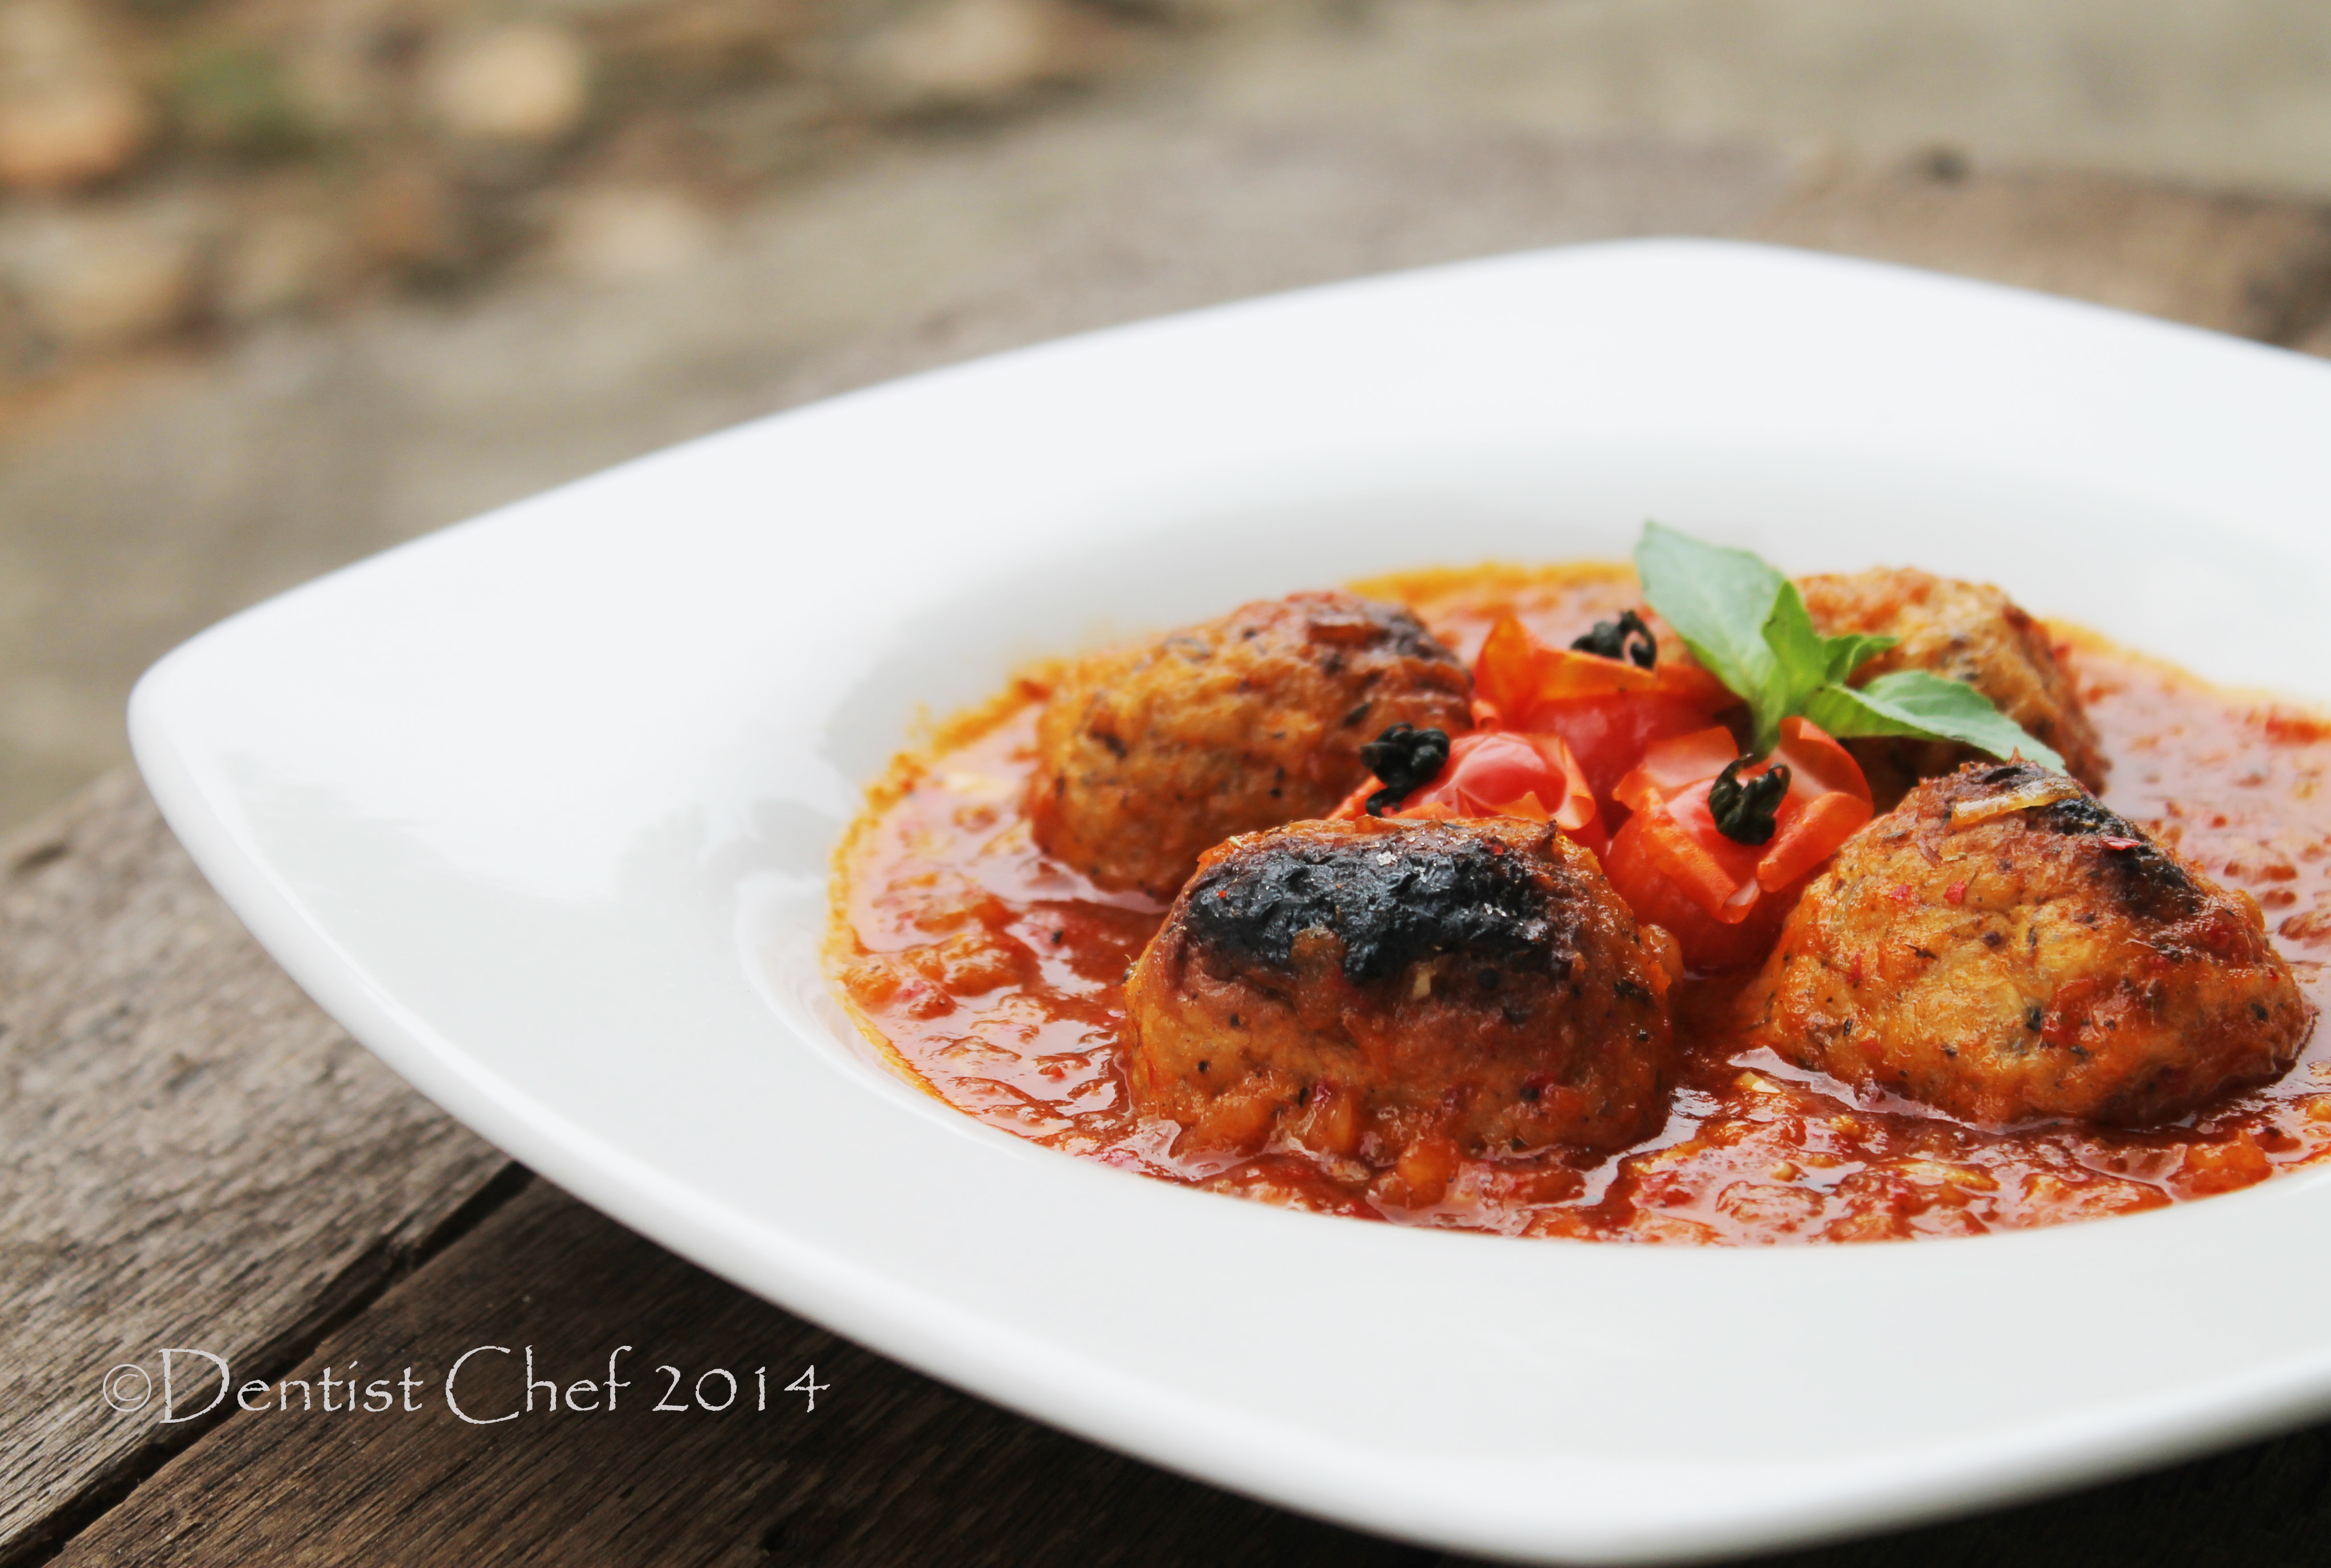 Baked Salmon Meatball with Cheese Stuffing Italian Spicy Tomato Basil Sauce, Ultimate Uncle Dentist Chef Recipe